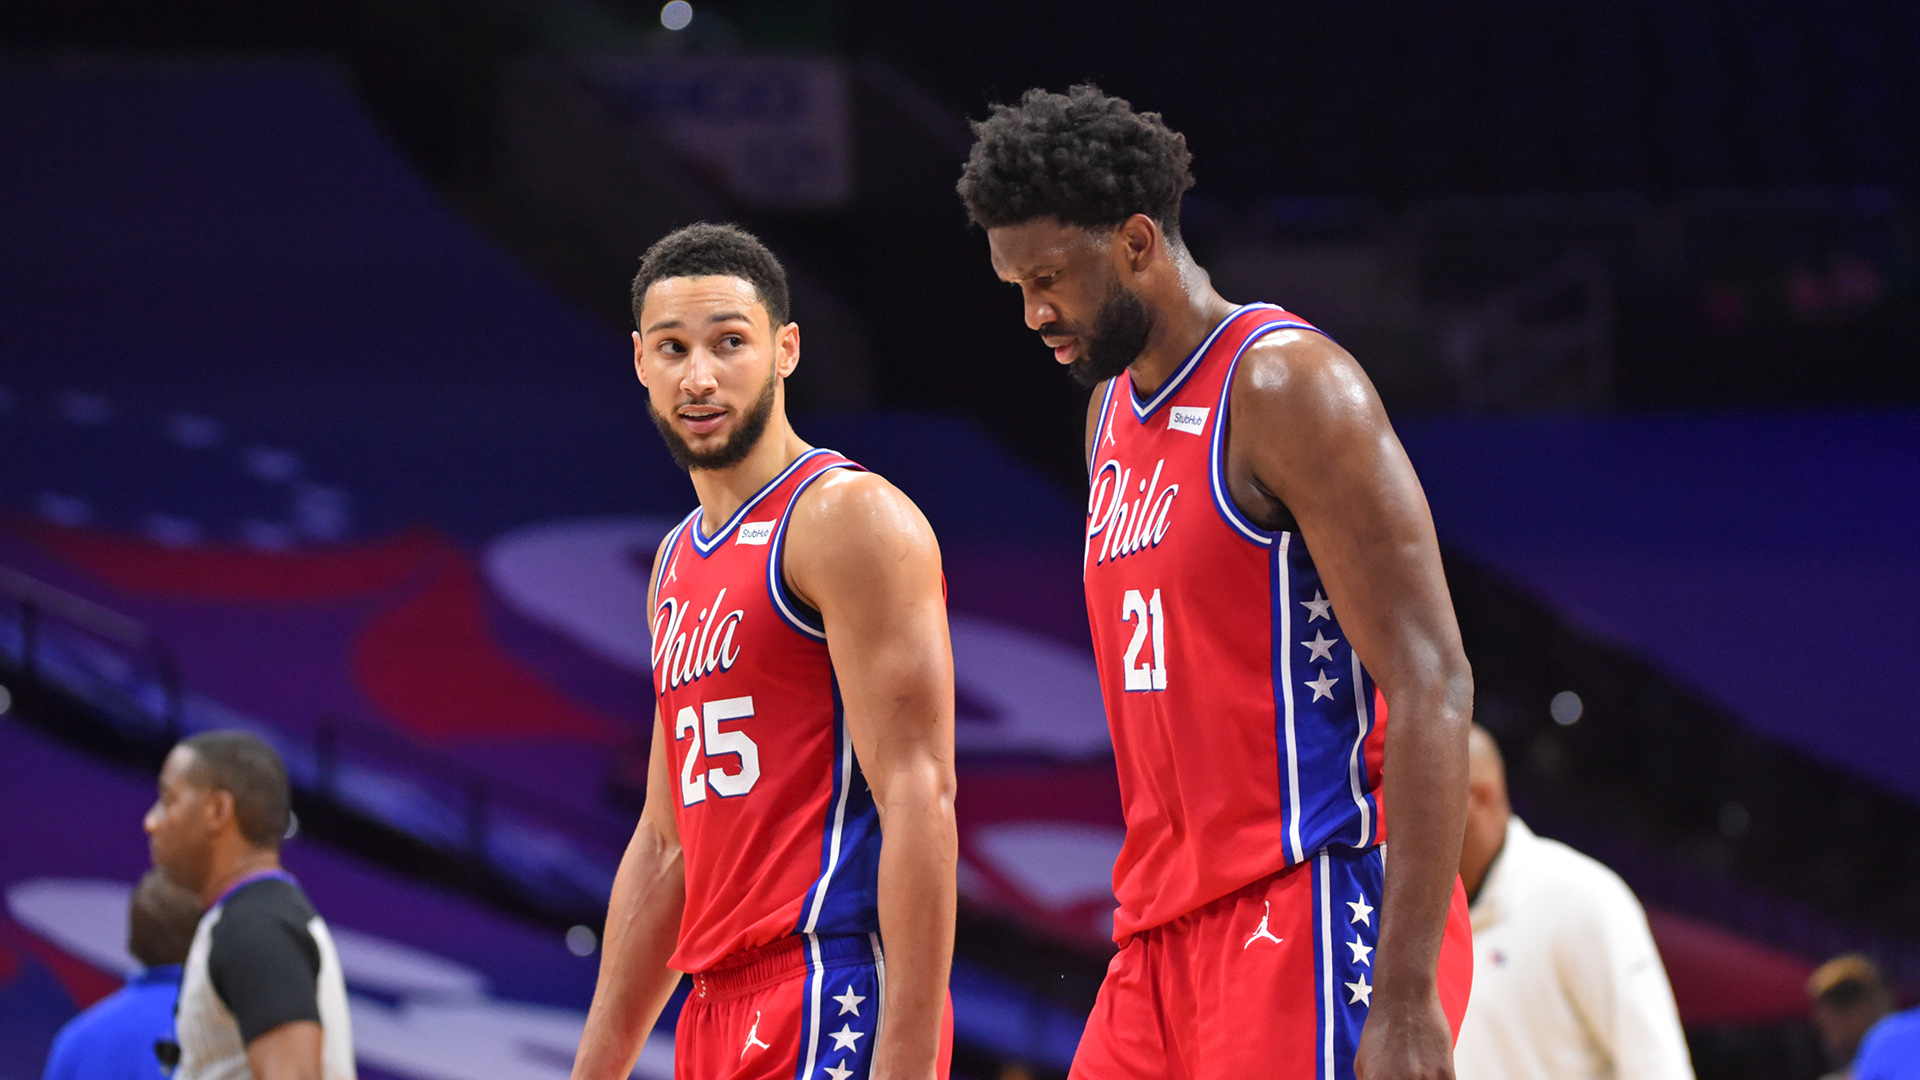 Is this the season the 76ers get out of the East?